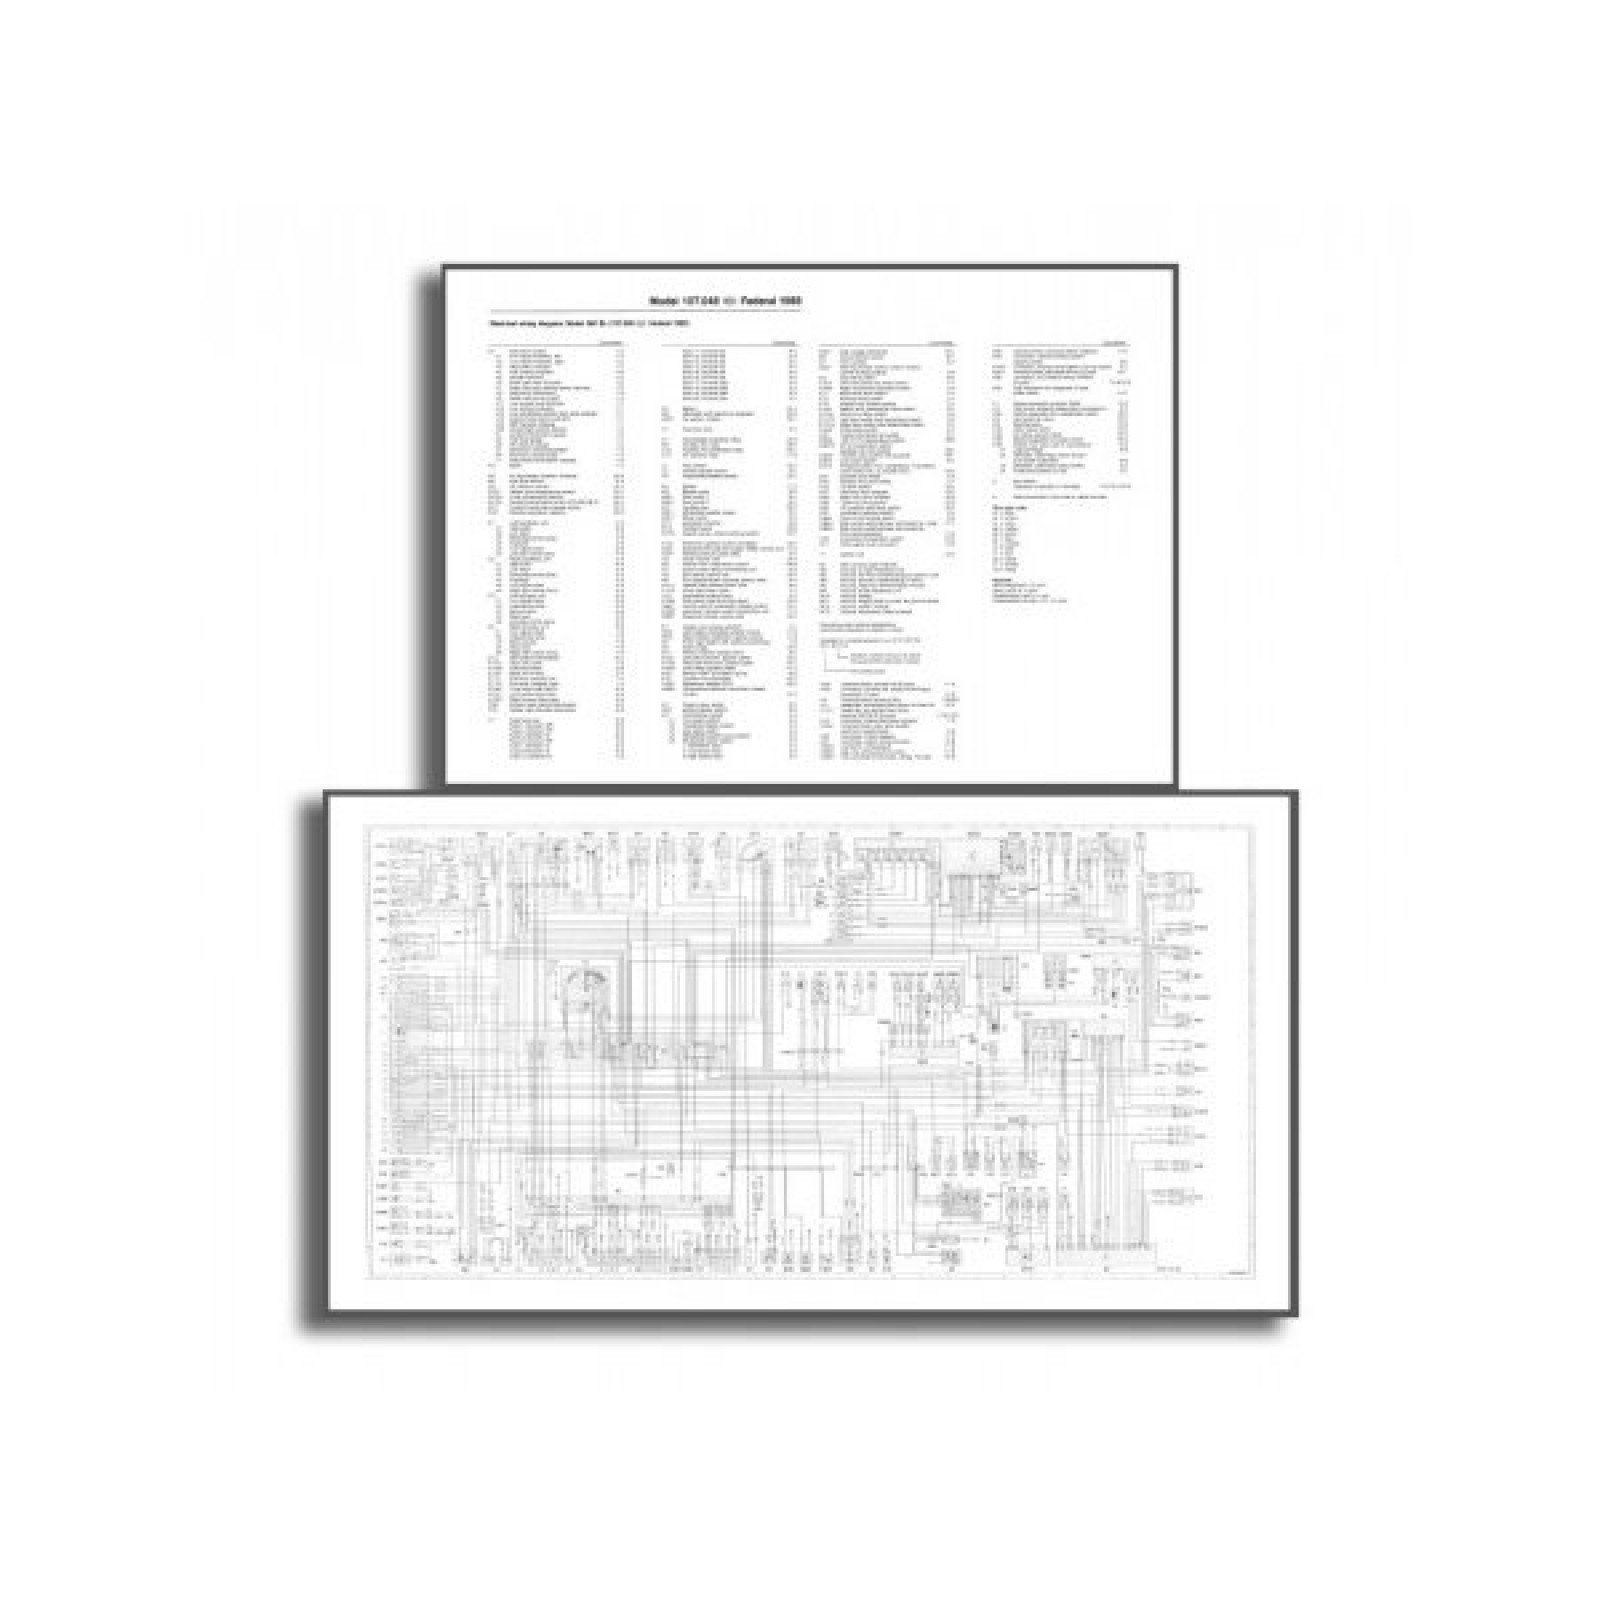 107.1114_1 mercedes benz sl 107 wiring diagram pdf download the sl shop Mercedes-Benz Relay Diagram at cos-gaming.co